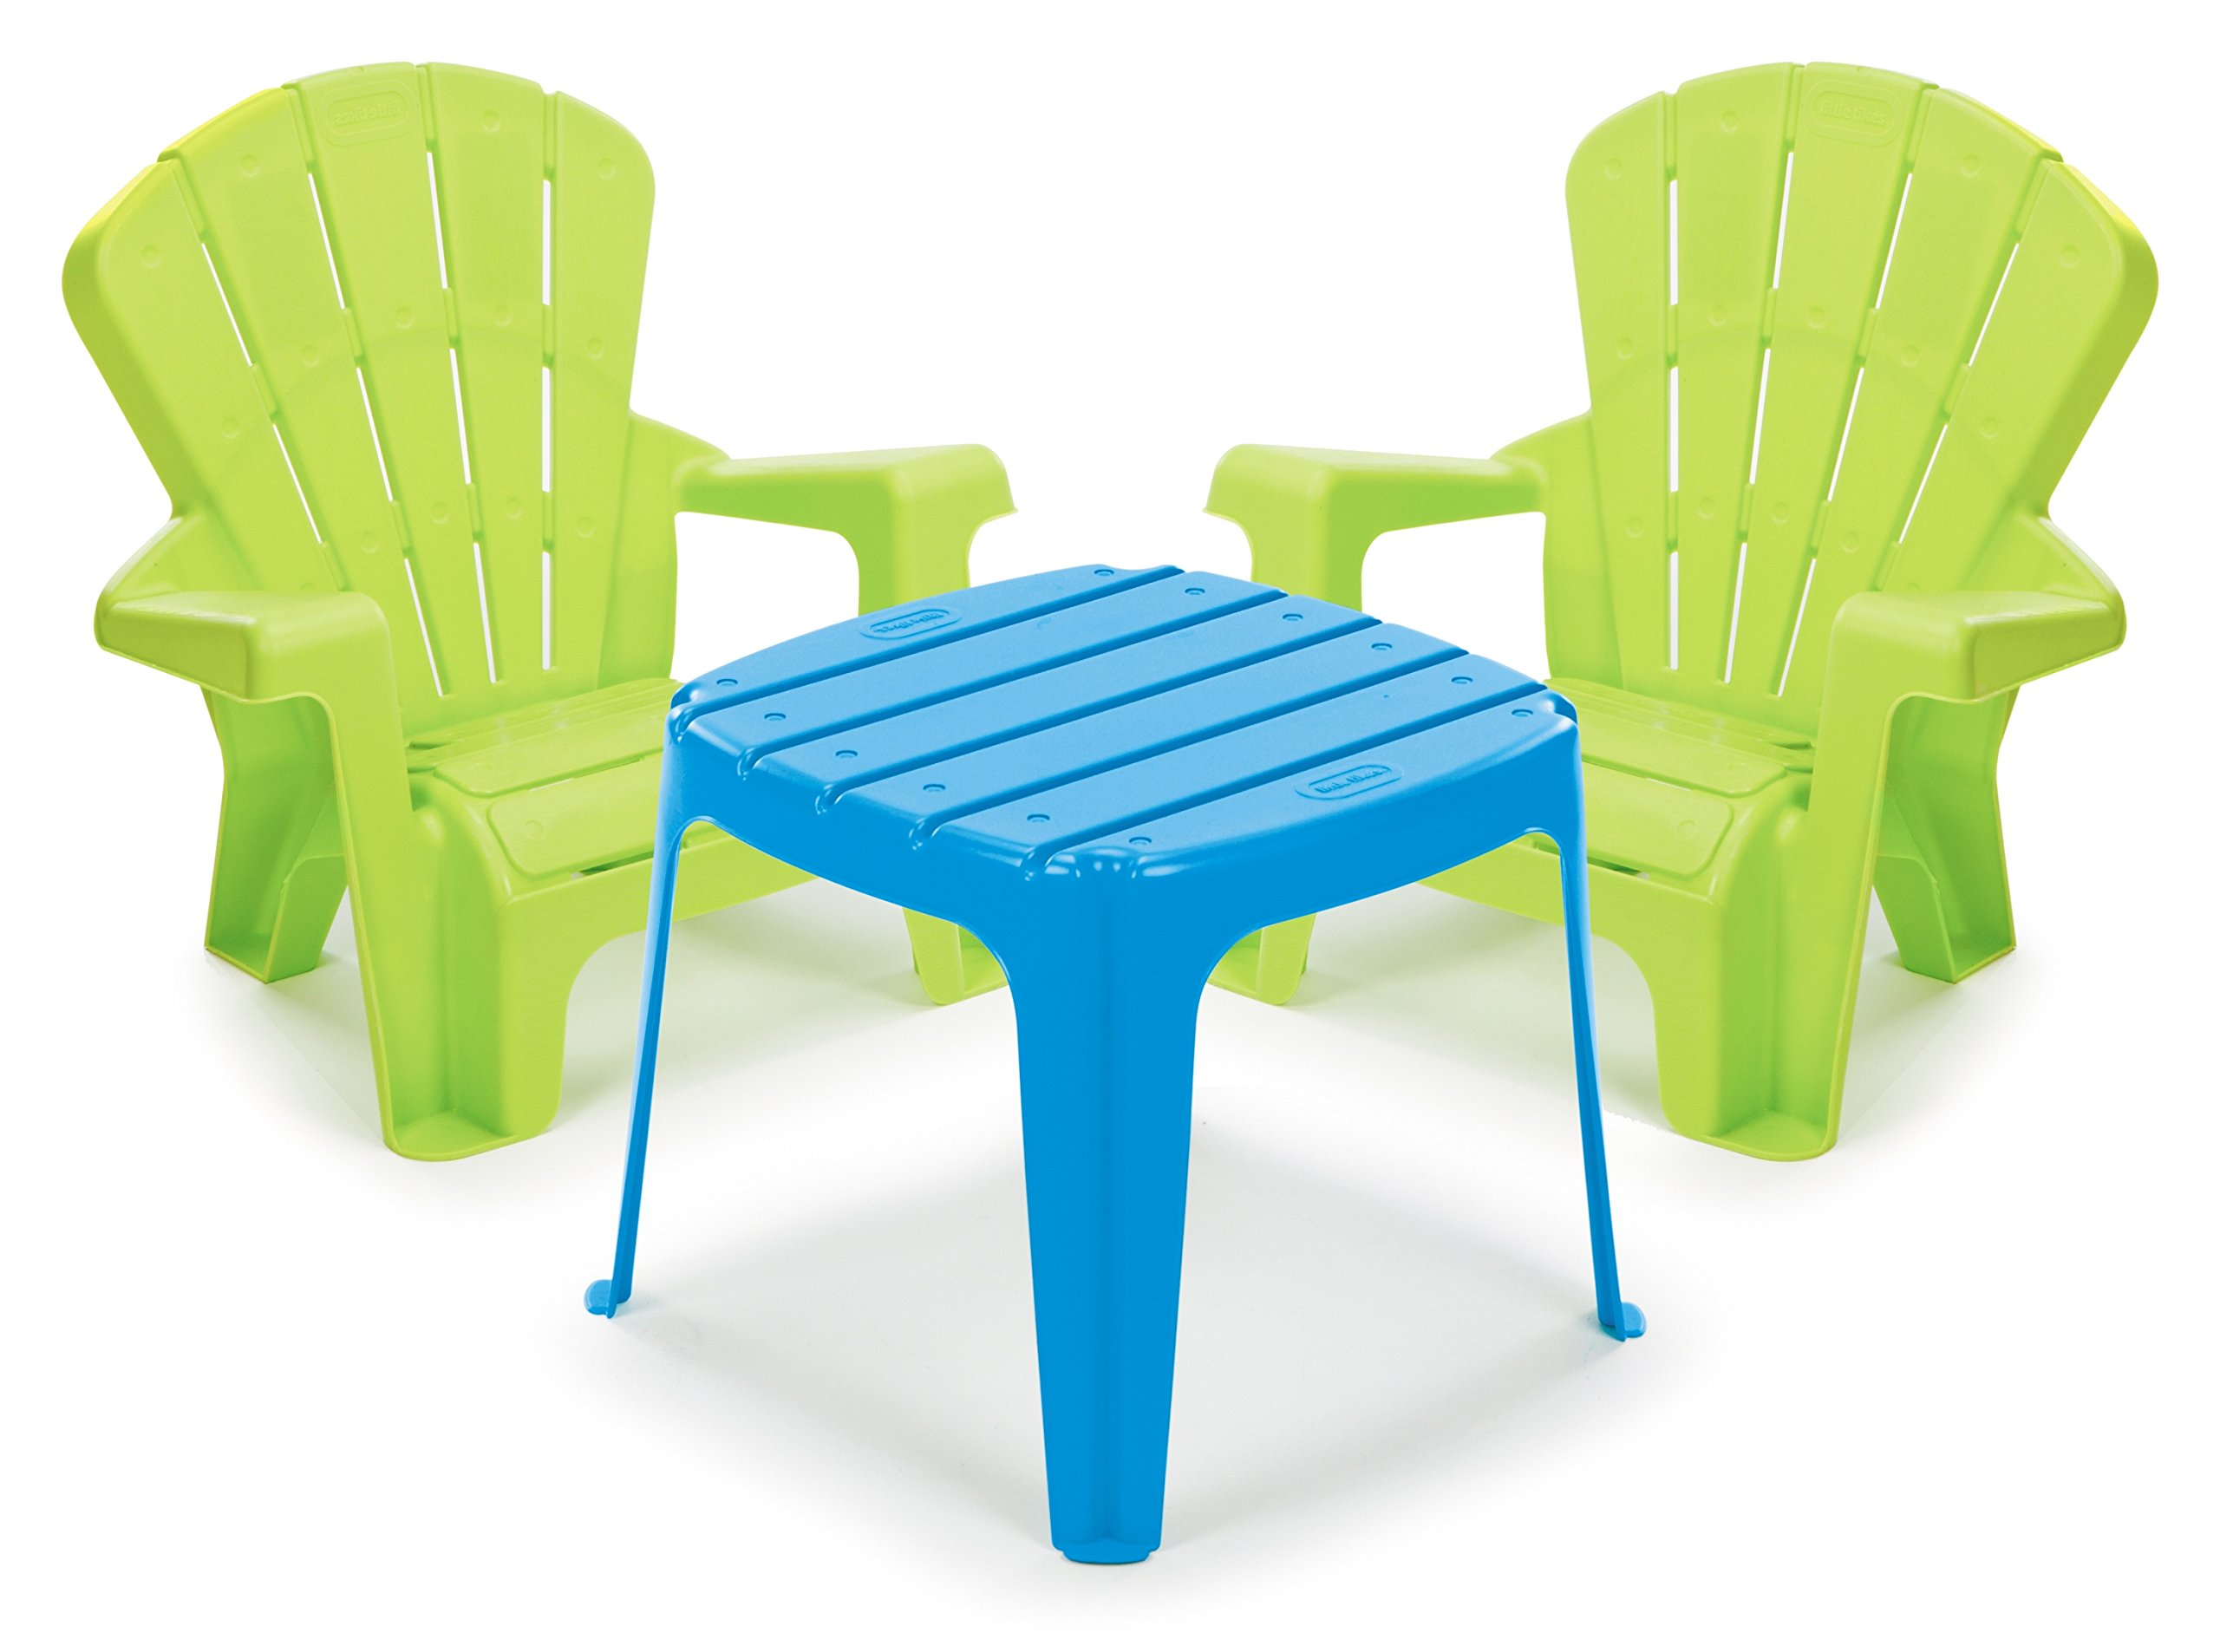 Little Tikes Garden Table and Chairs Set, Blue/Green by Little Tikes